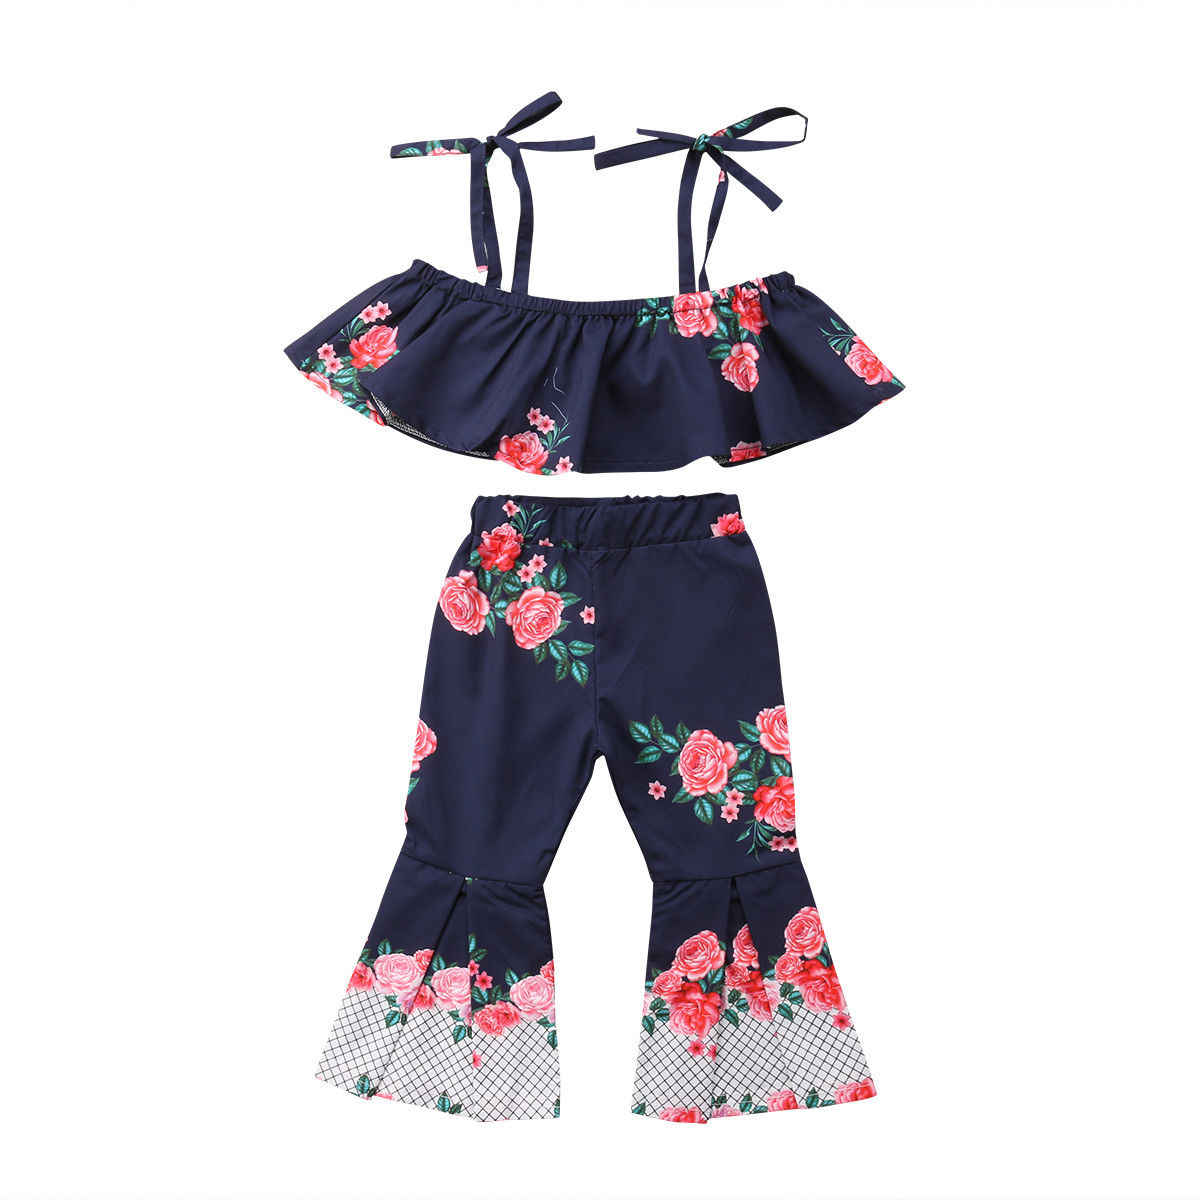 fa6904105959d 2PCS Toddler Baby Girls Summer Flower Clothes Strap Crop Tops+Bell bottom  Flared Pant Outfits